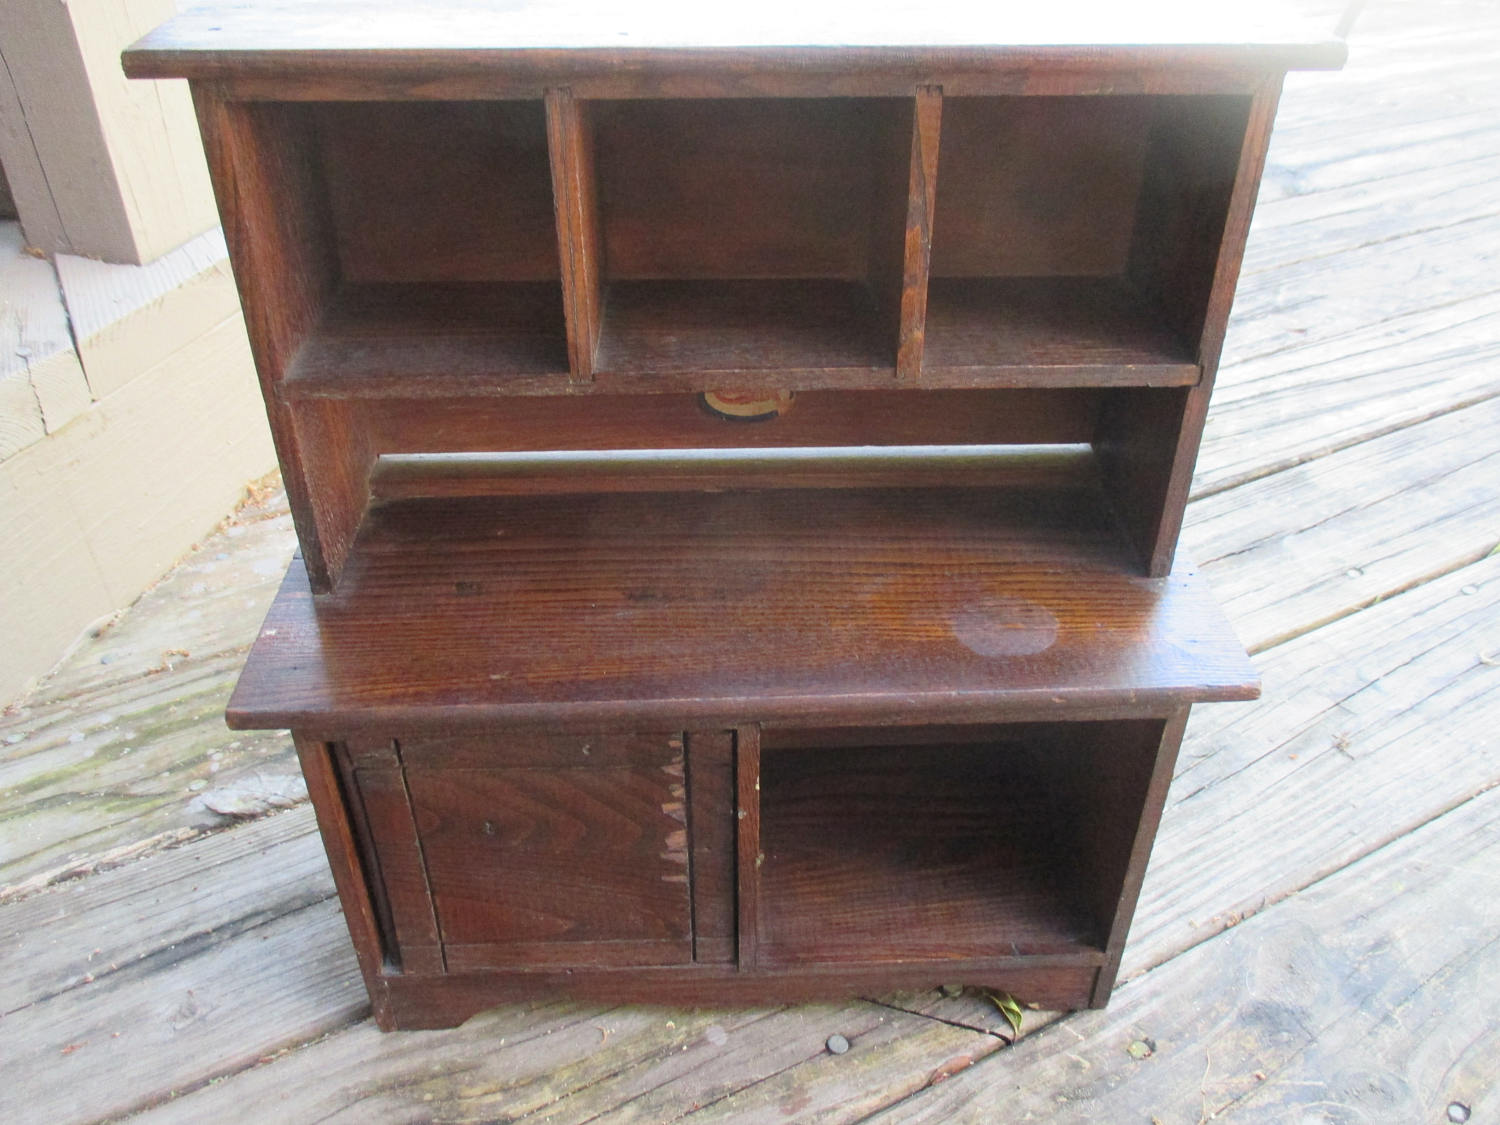 Vintage Kitchen Hutch Cabinet Cass Toys Wooden Miniature Home Collectible  Wood Cupboard Sideboard Rustic Primitive Farmhouse